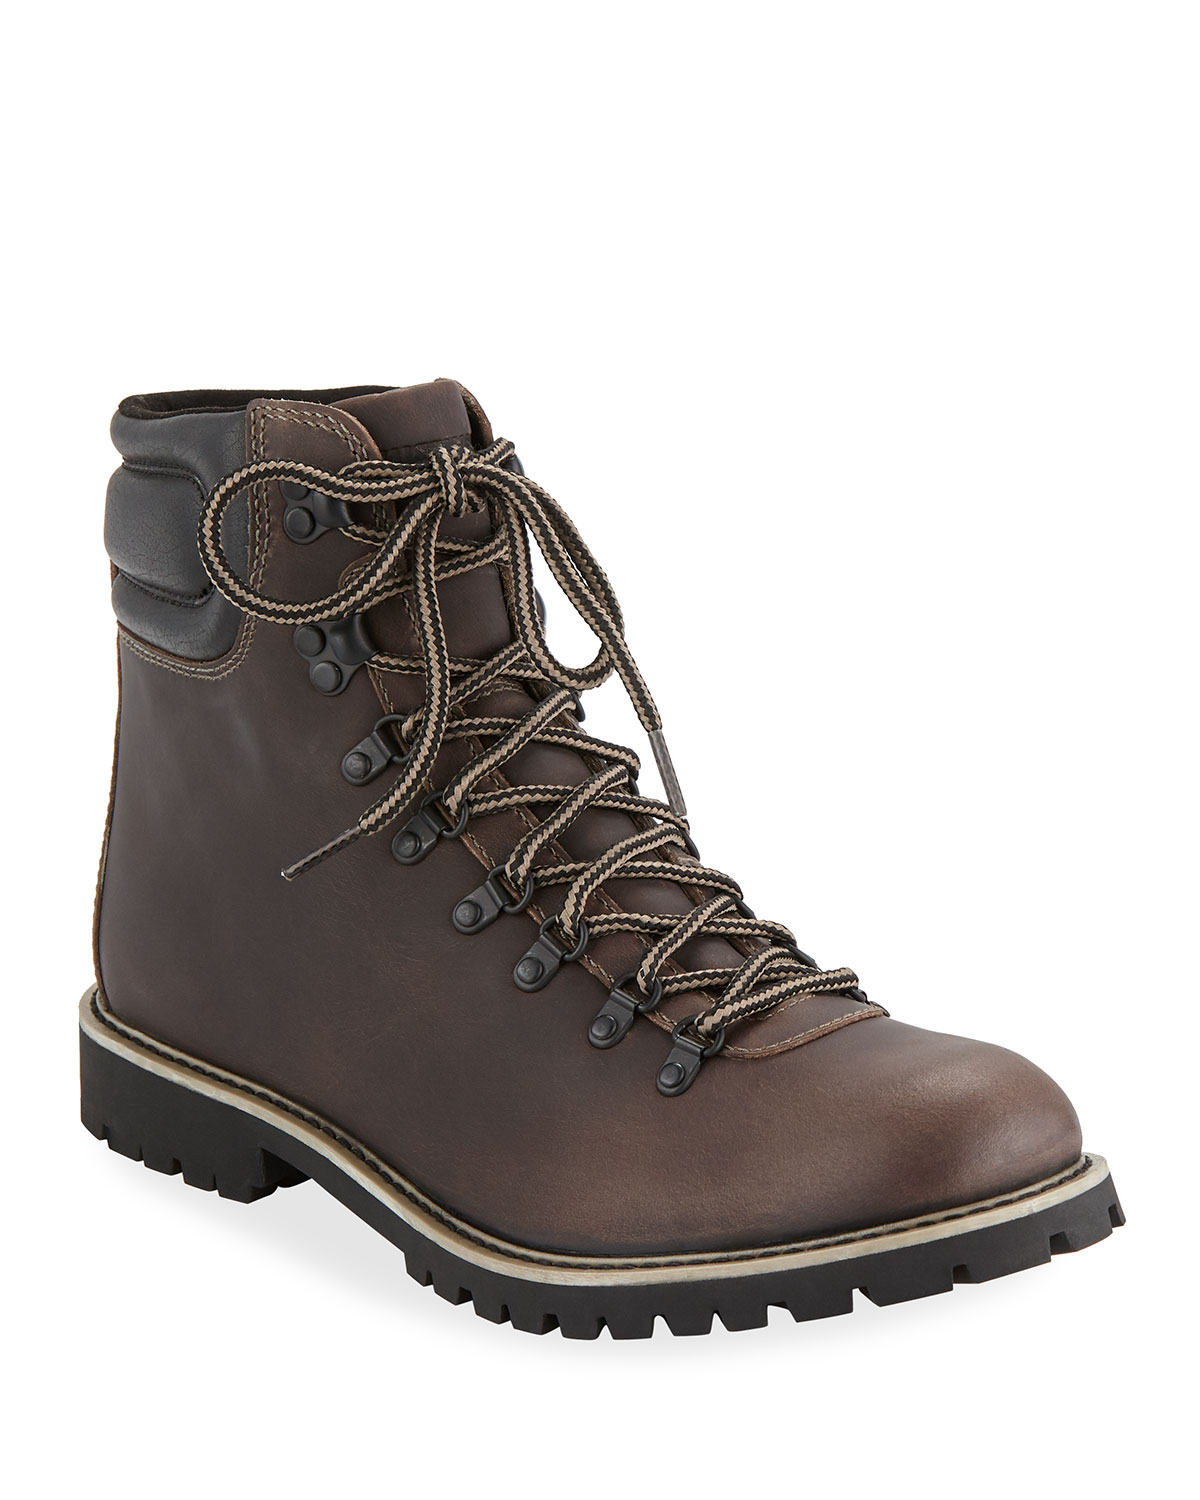 9610094740c Men's Waterproof Leather Hiking Boots